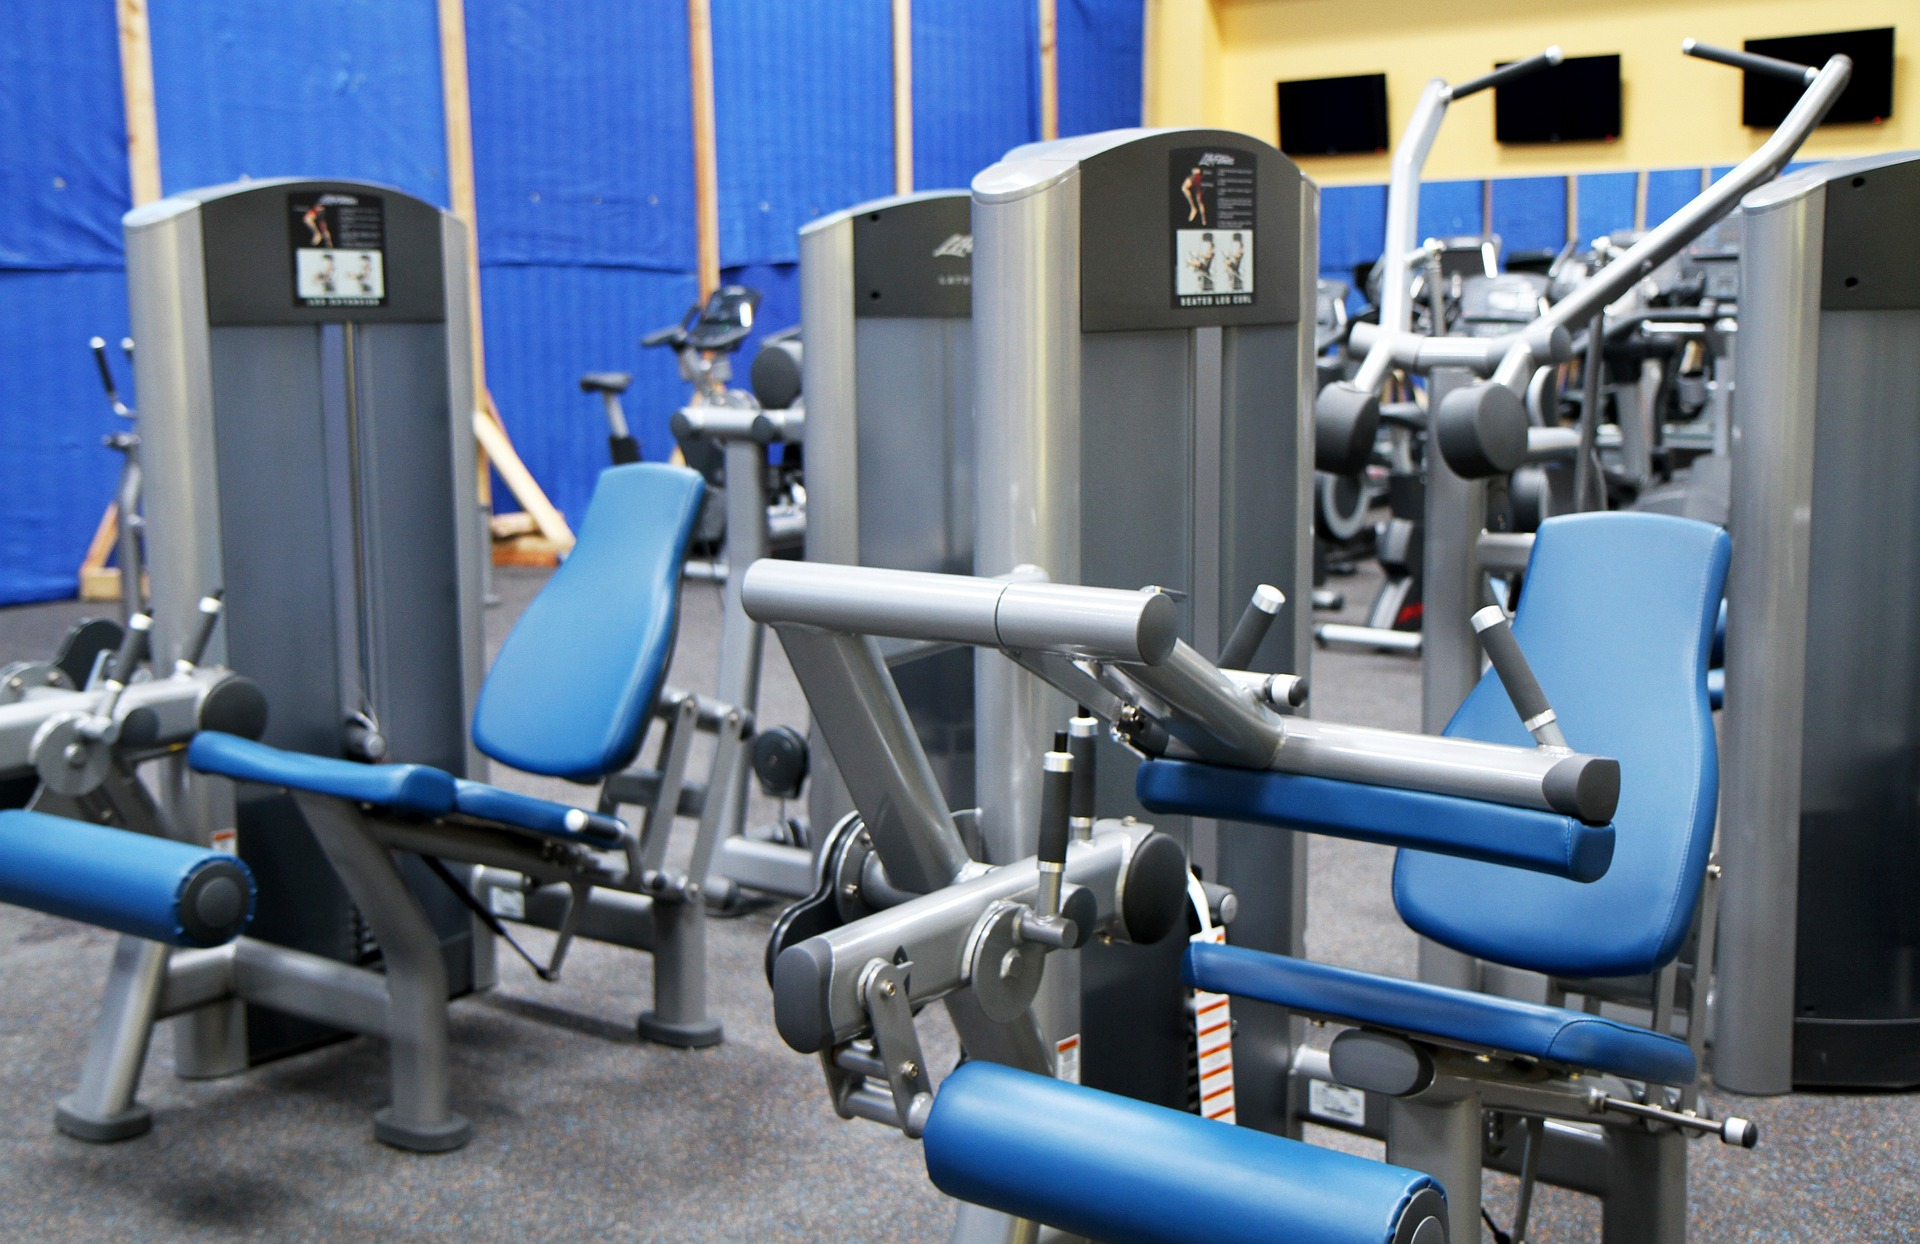 Gym Equipment Odor Smell Removal